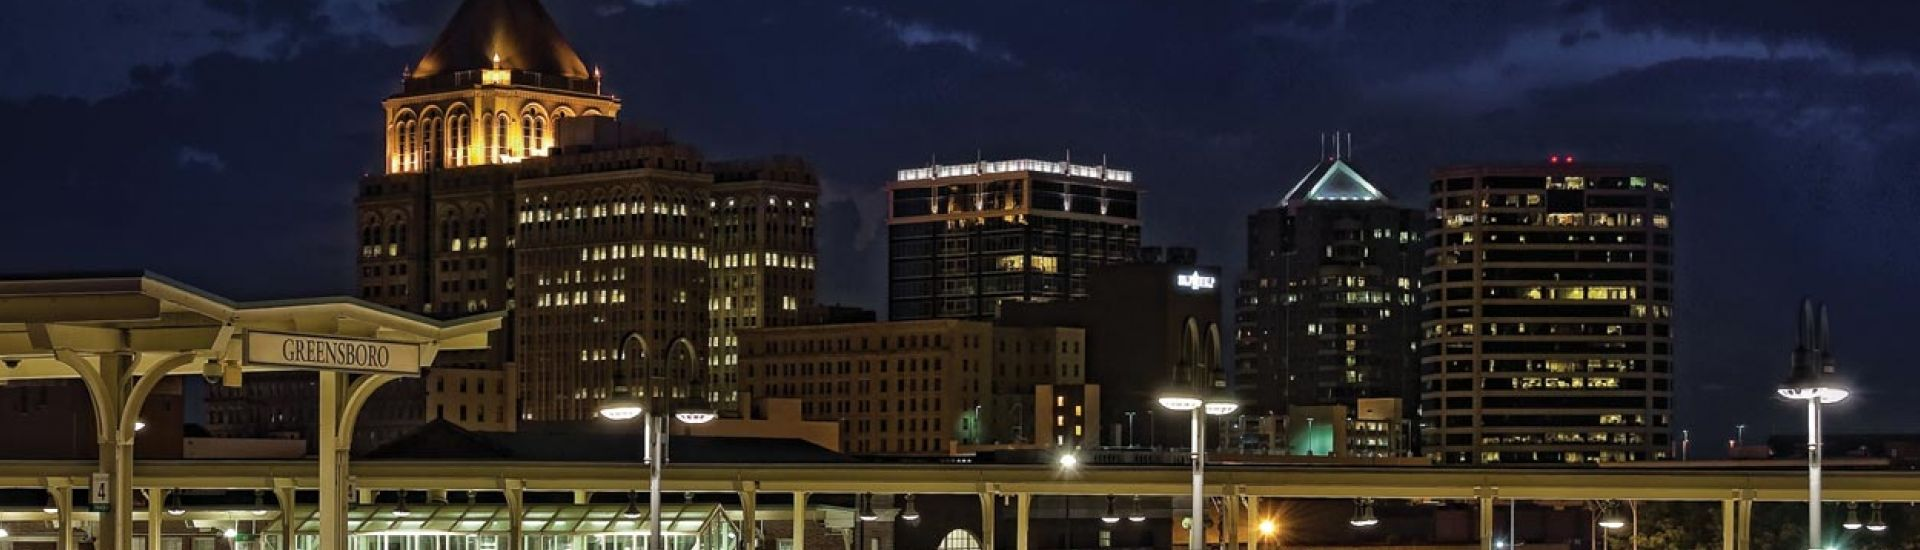 Greensboro-night-skyline-with-moon-by-dan-routh-photography 1